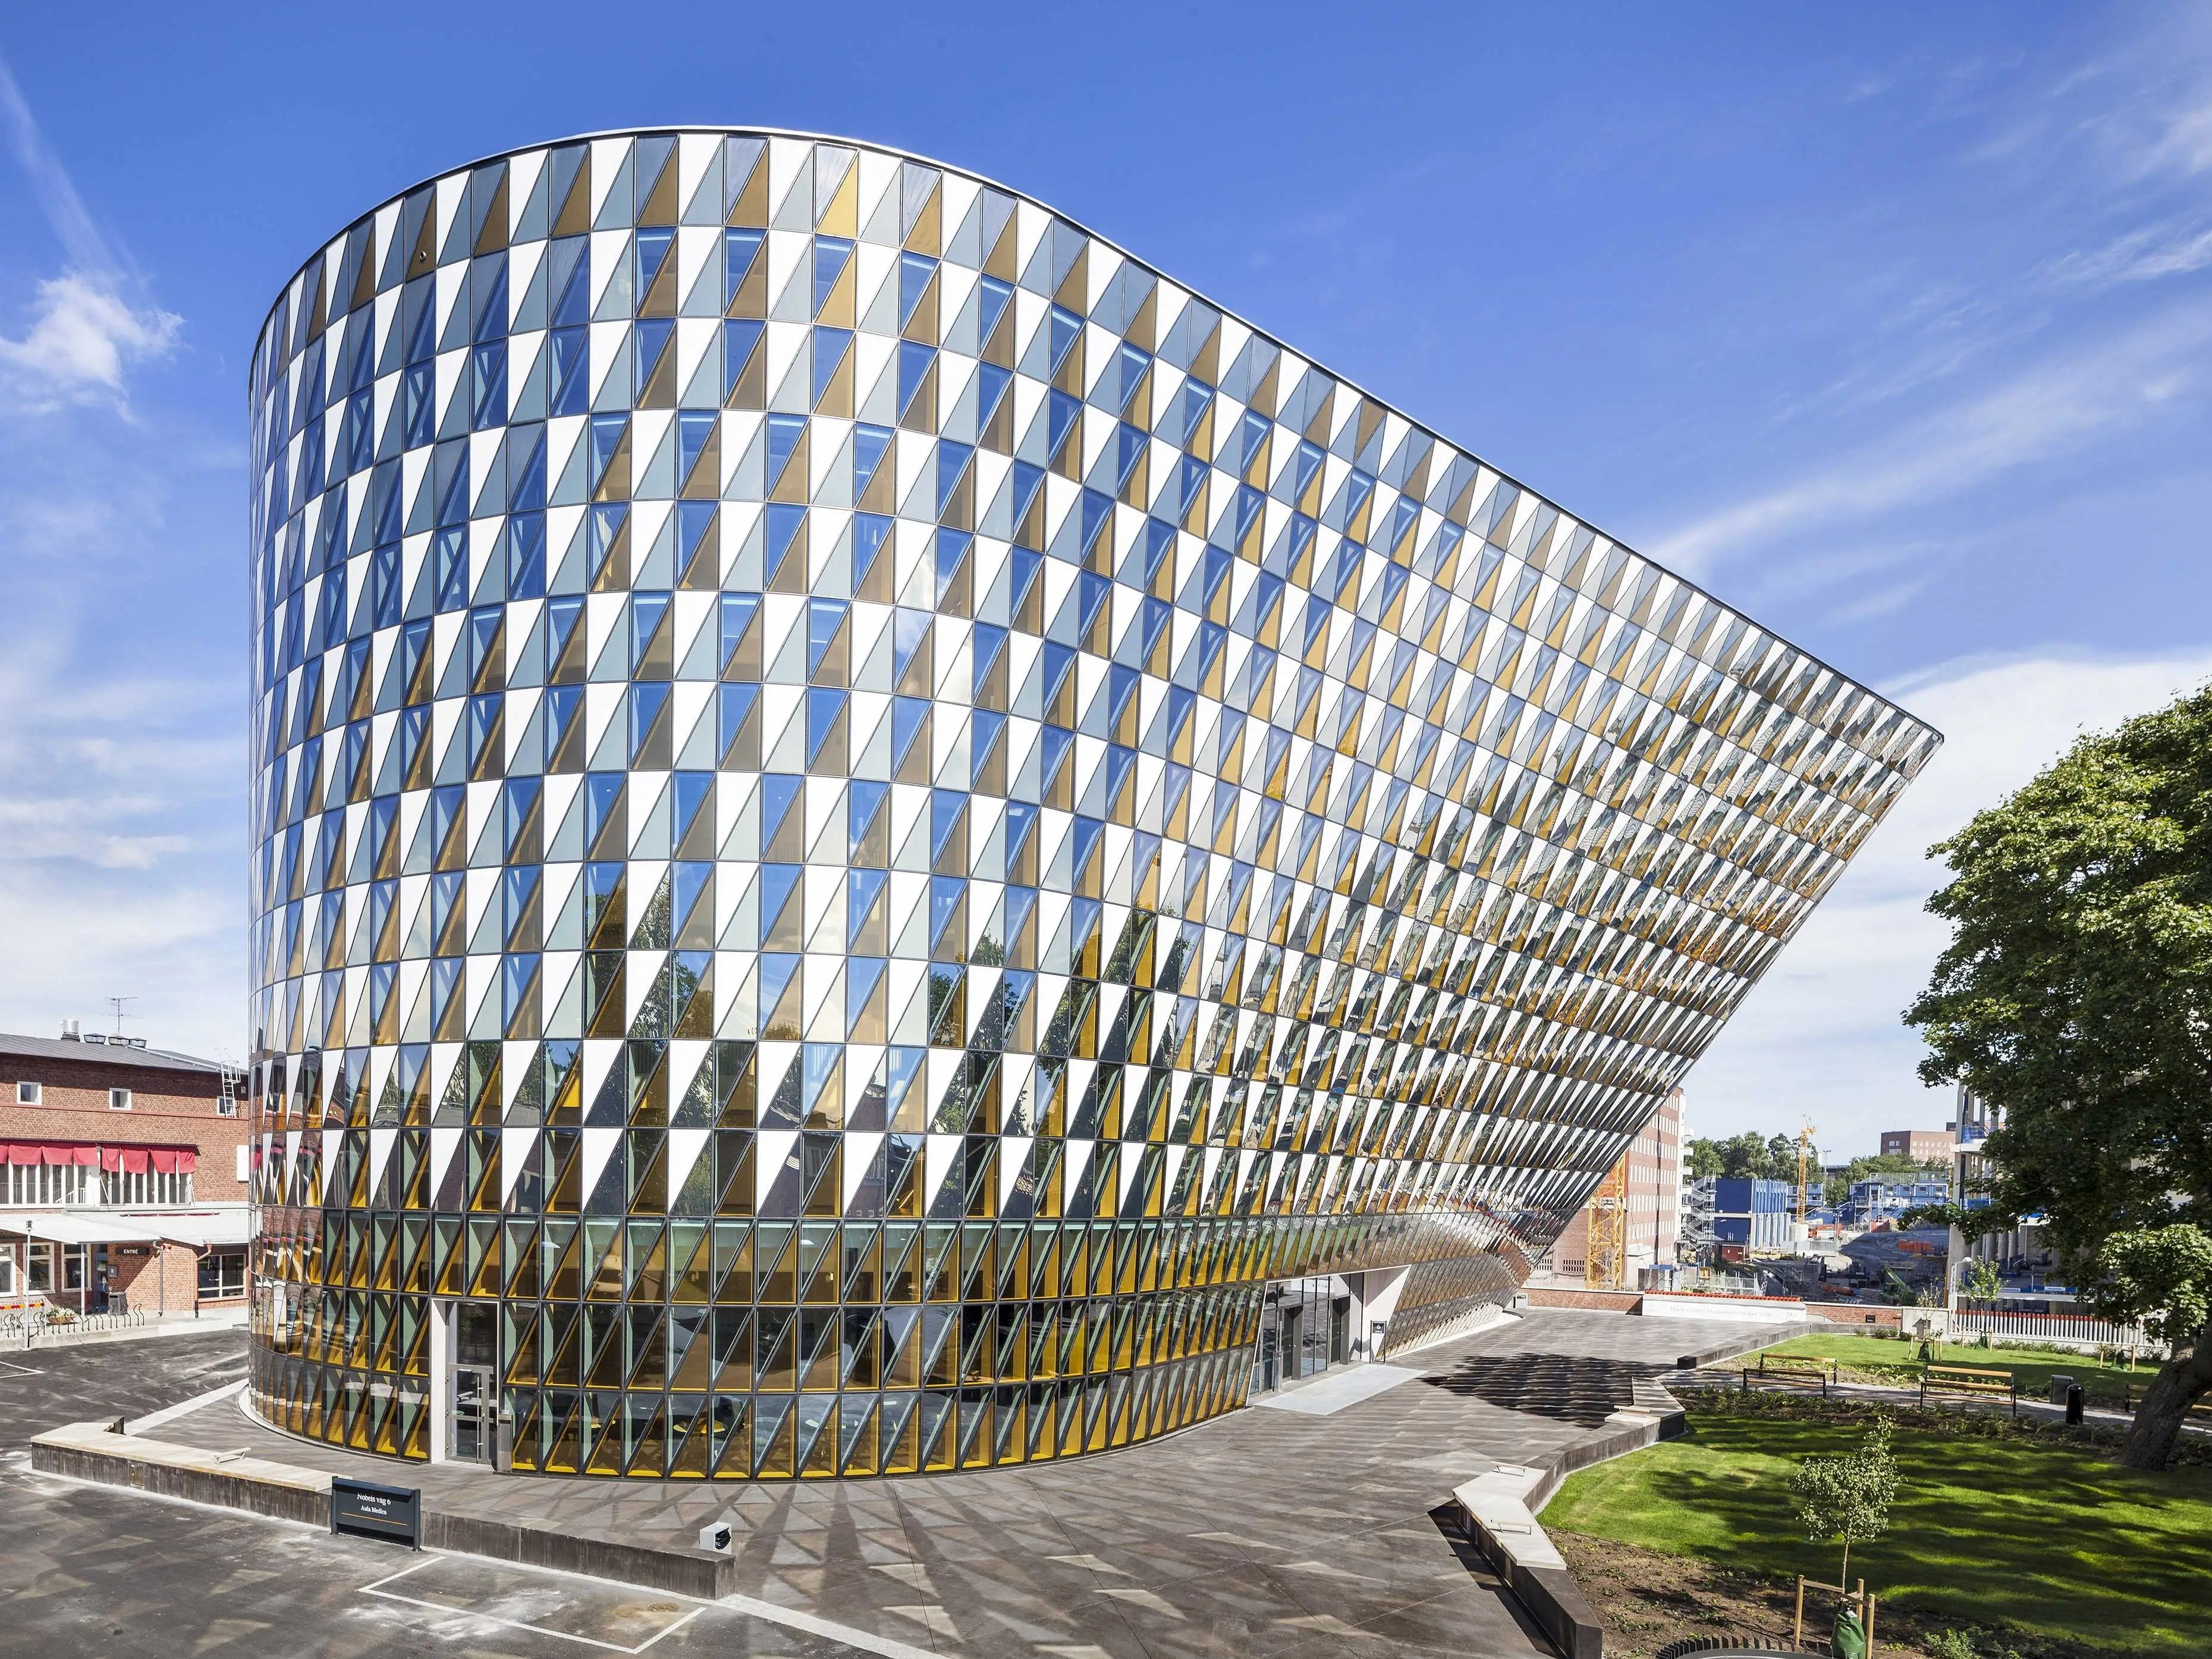 Aula Medica by Wingårdh Arkitektkontor AB, Solna, Sweden (shortlisted in Higher Education and Research)